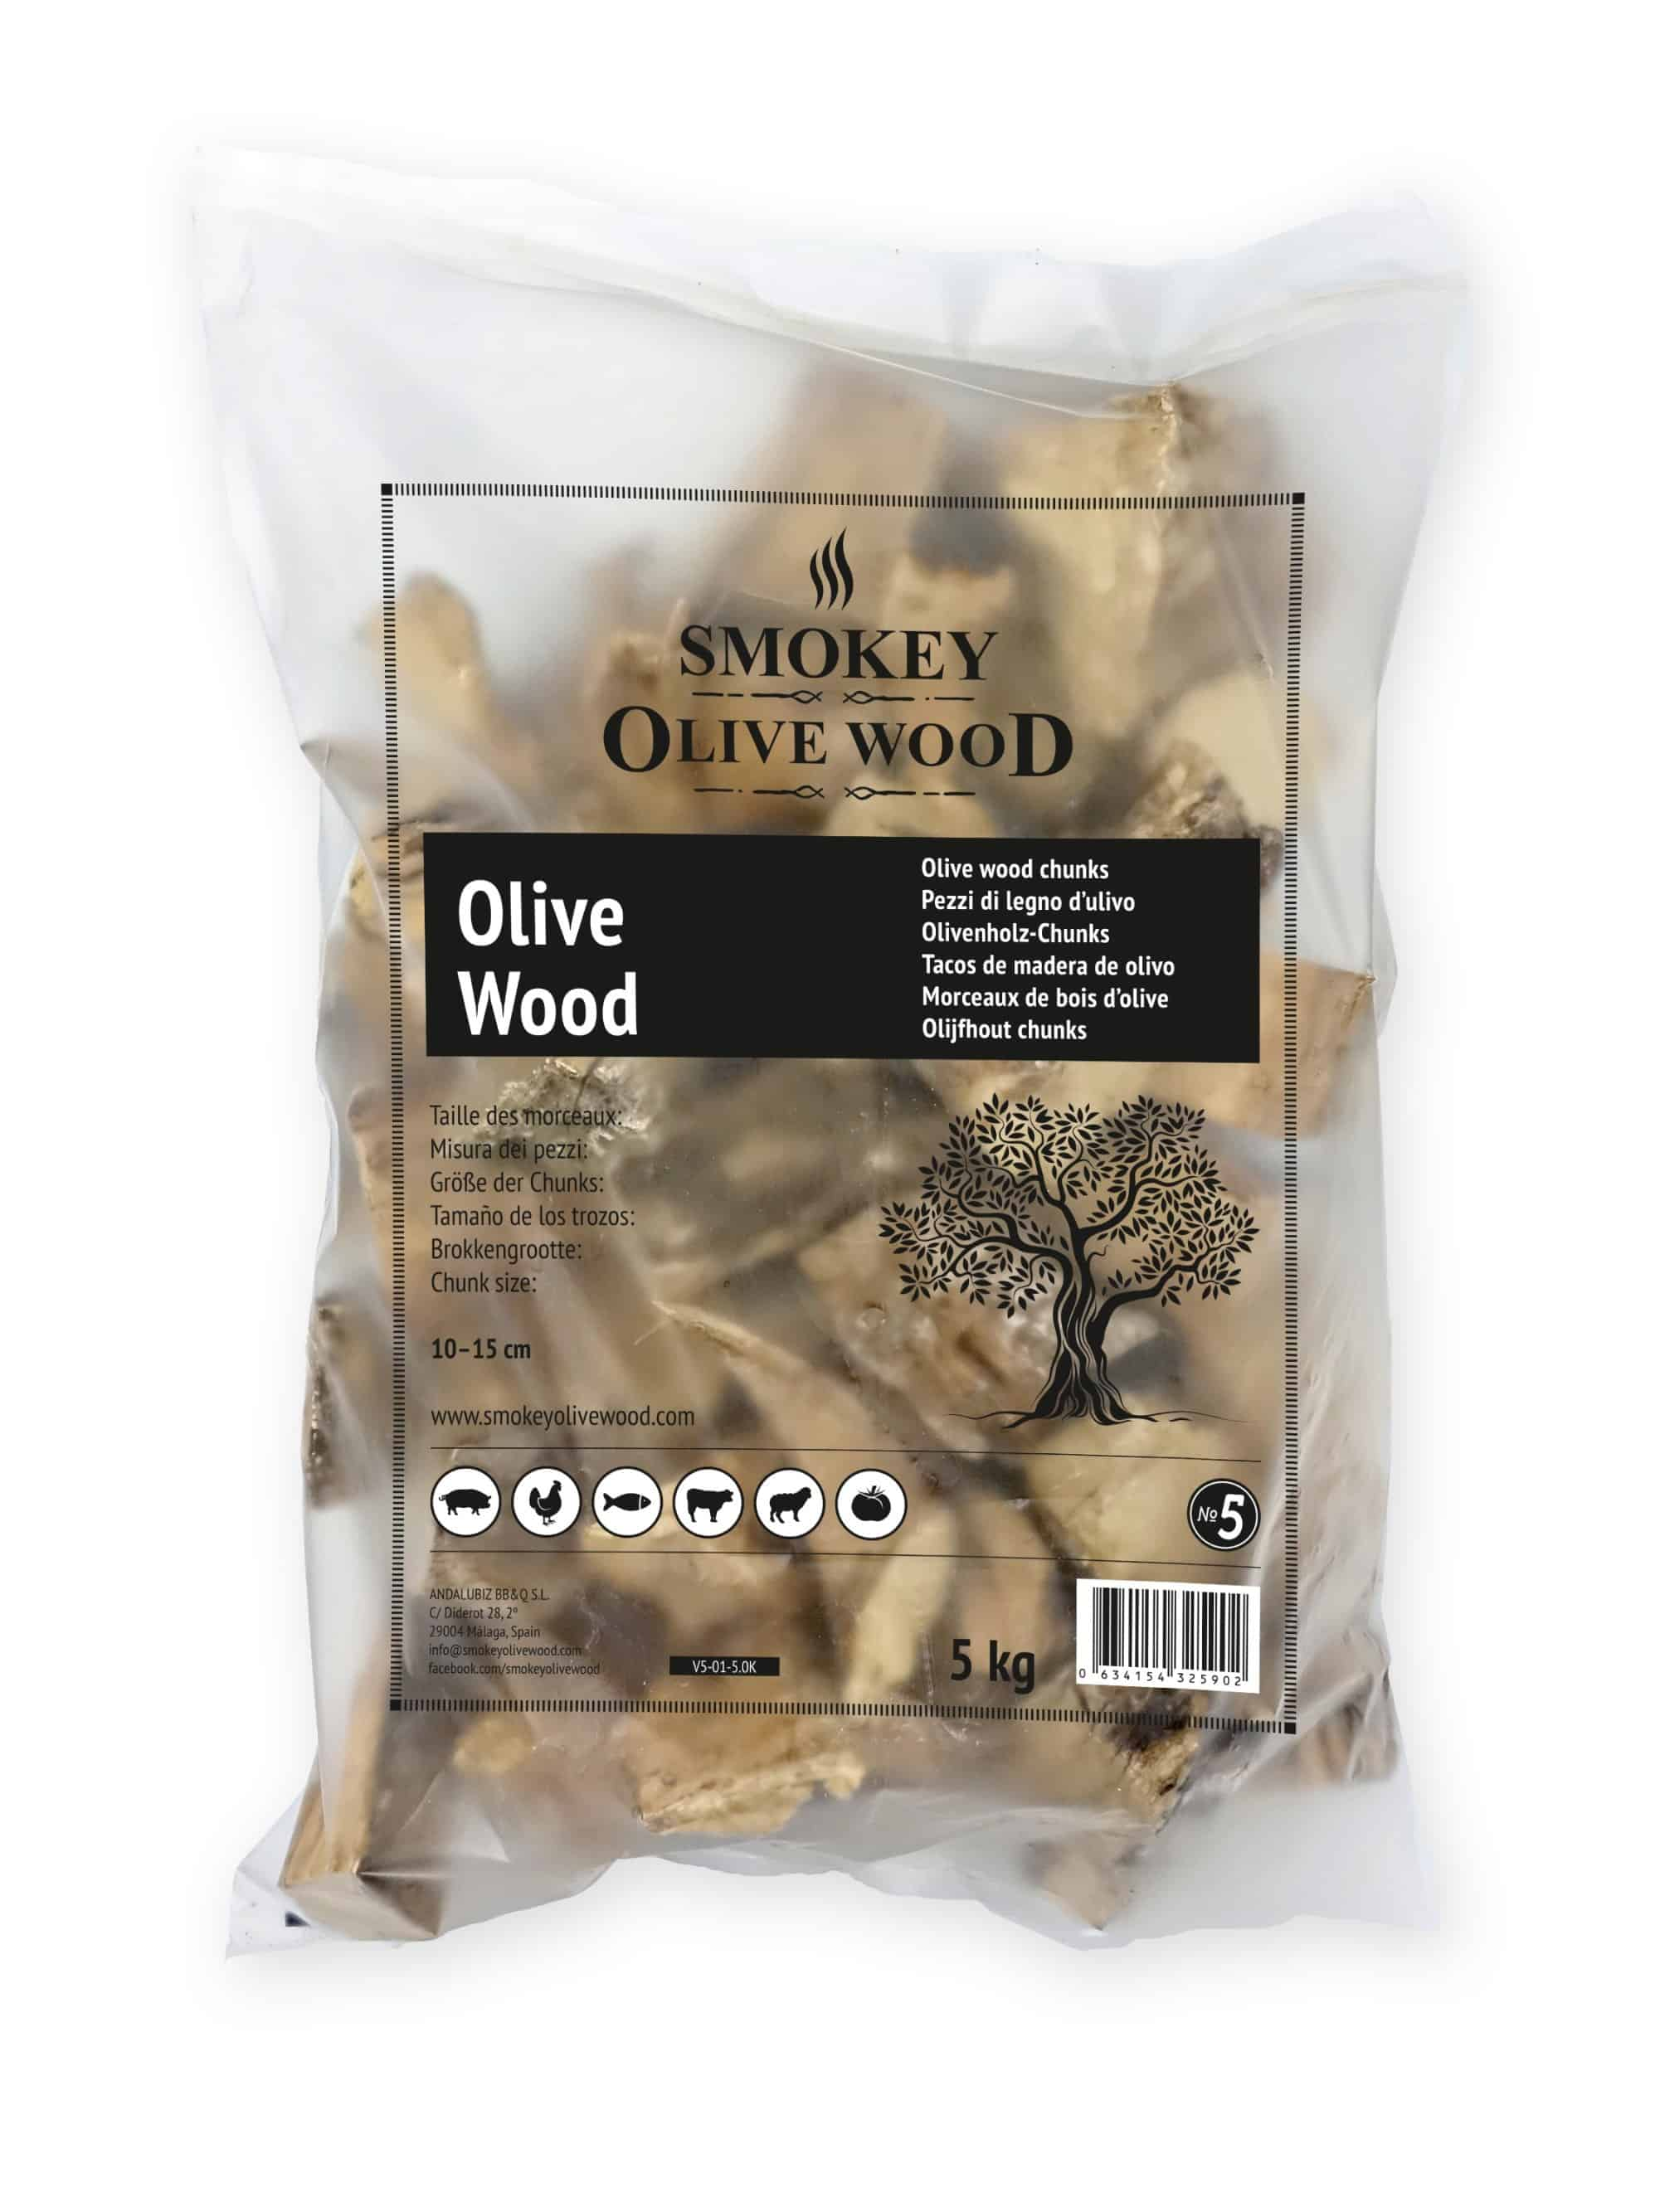 Smokey Olive Wood Raw Chunks Nº5 Smoking Chips Smoker BBQ Grill weber